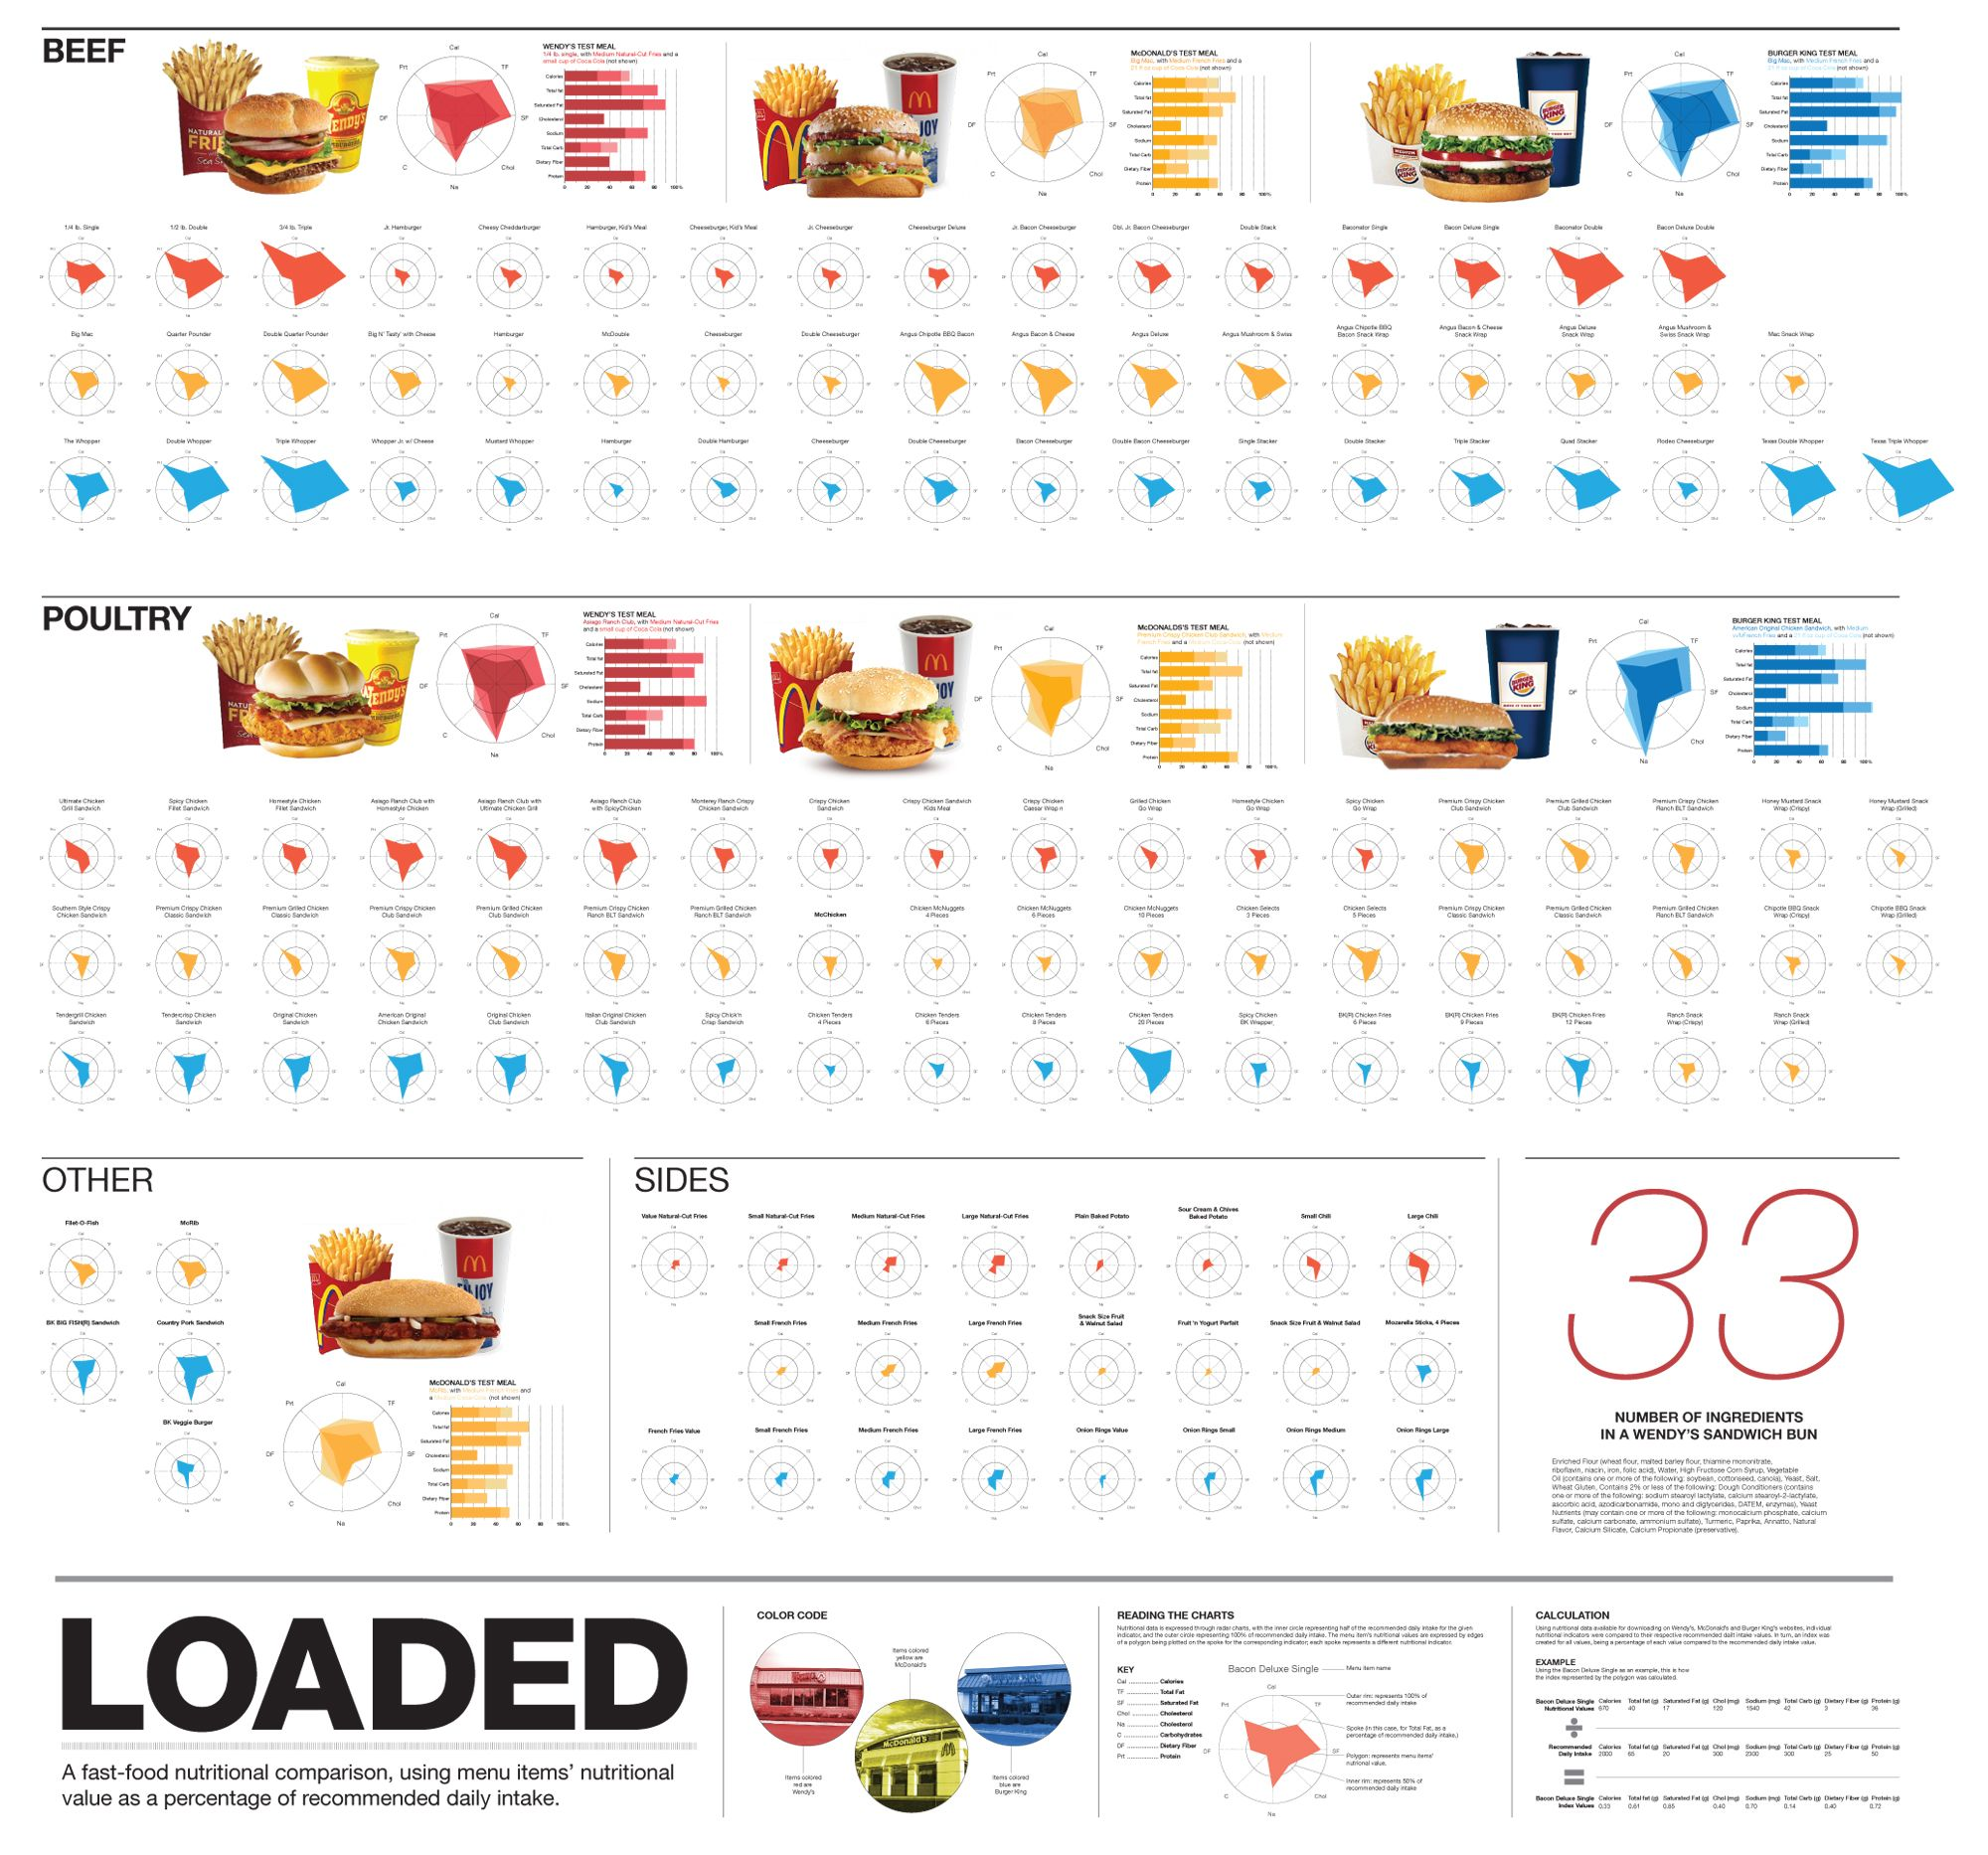 A Comparison Of Nutritional Metrics In Menu Items From